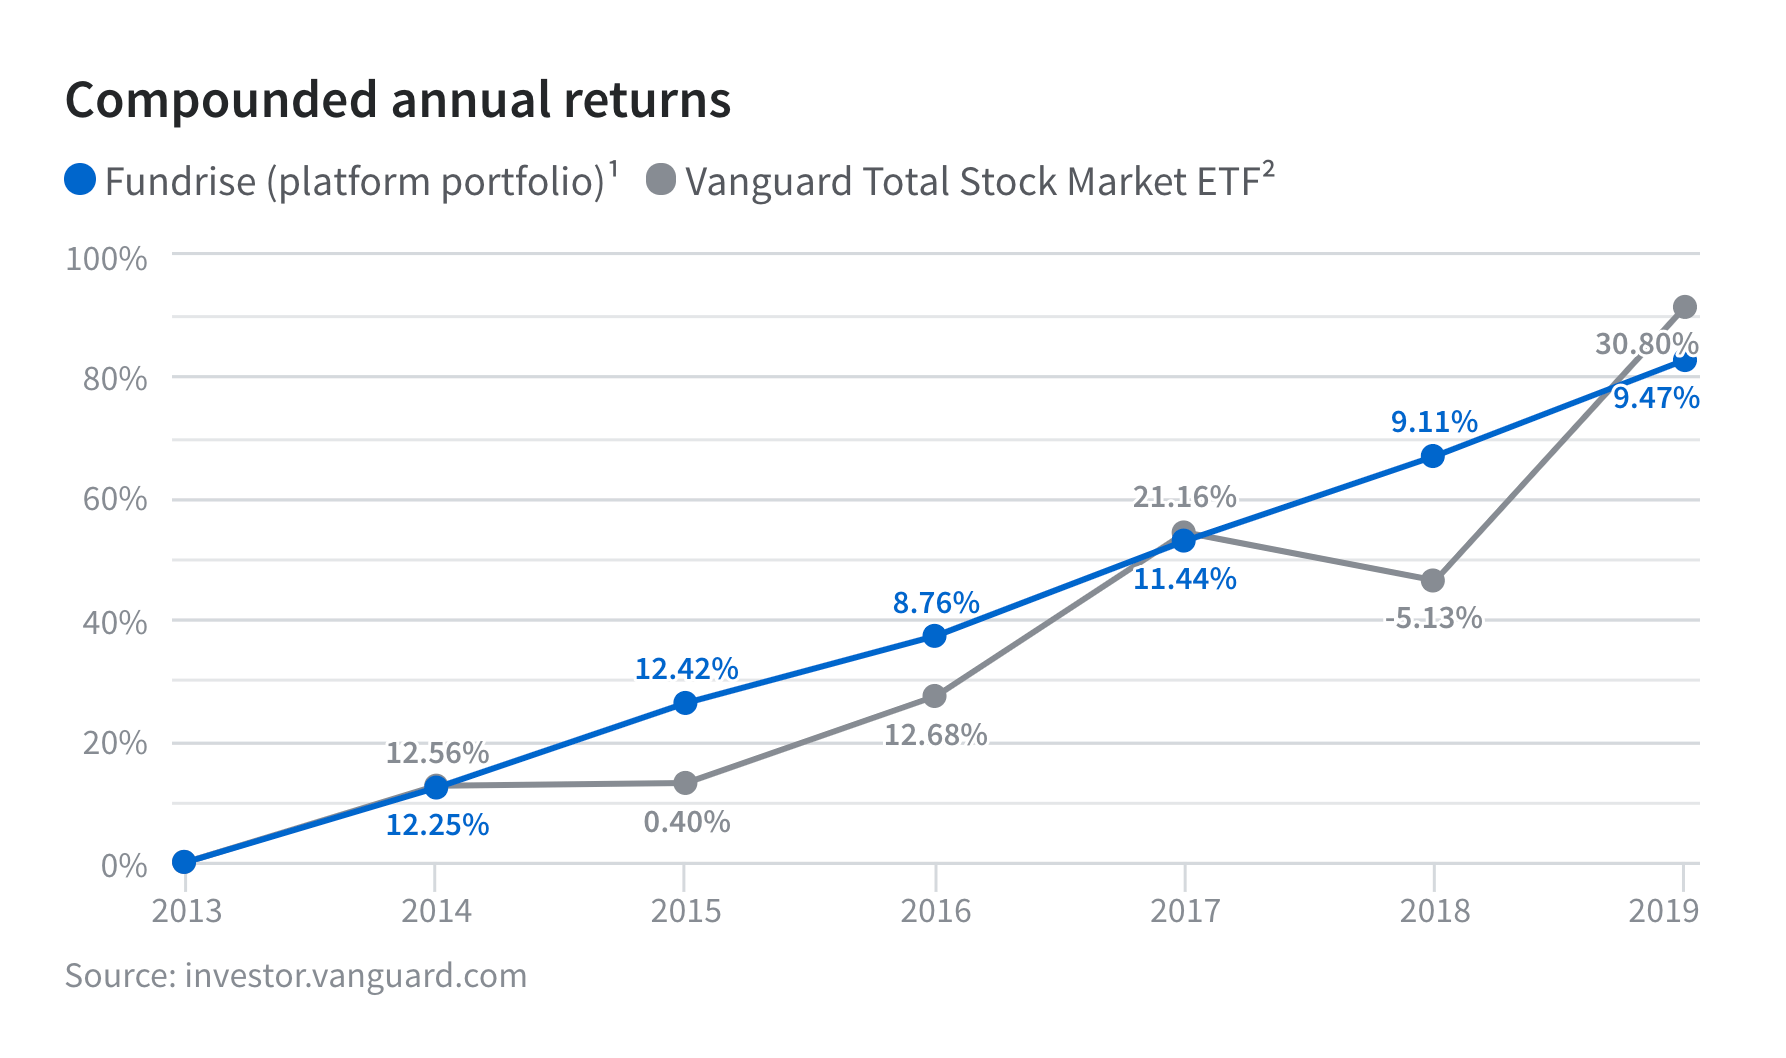 Compounded annual returns